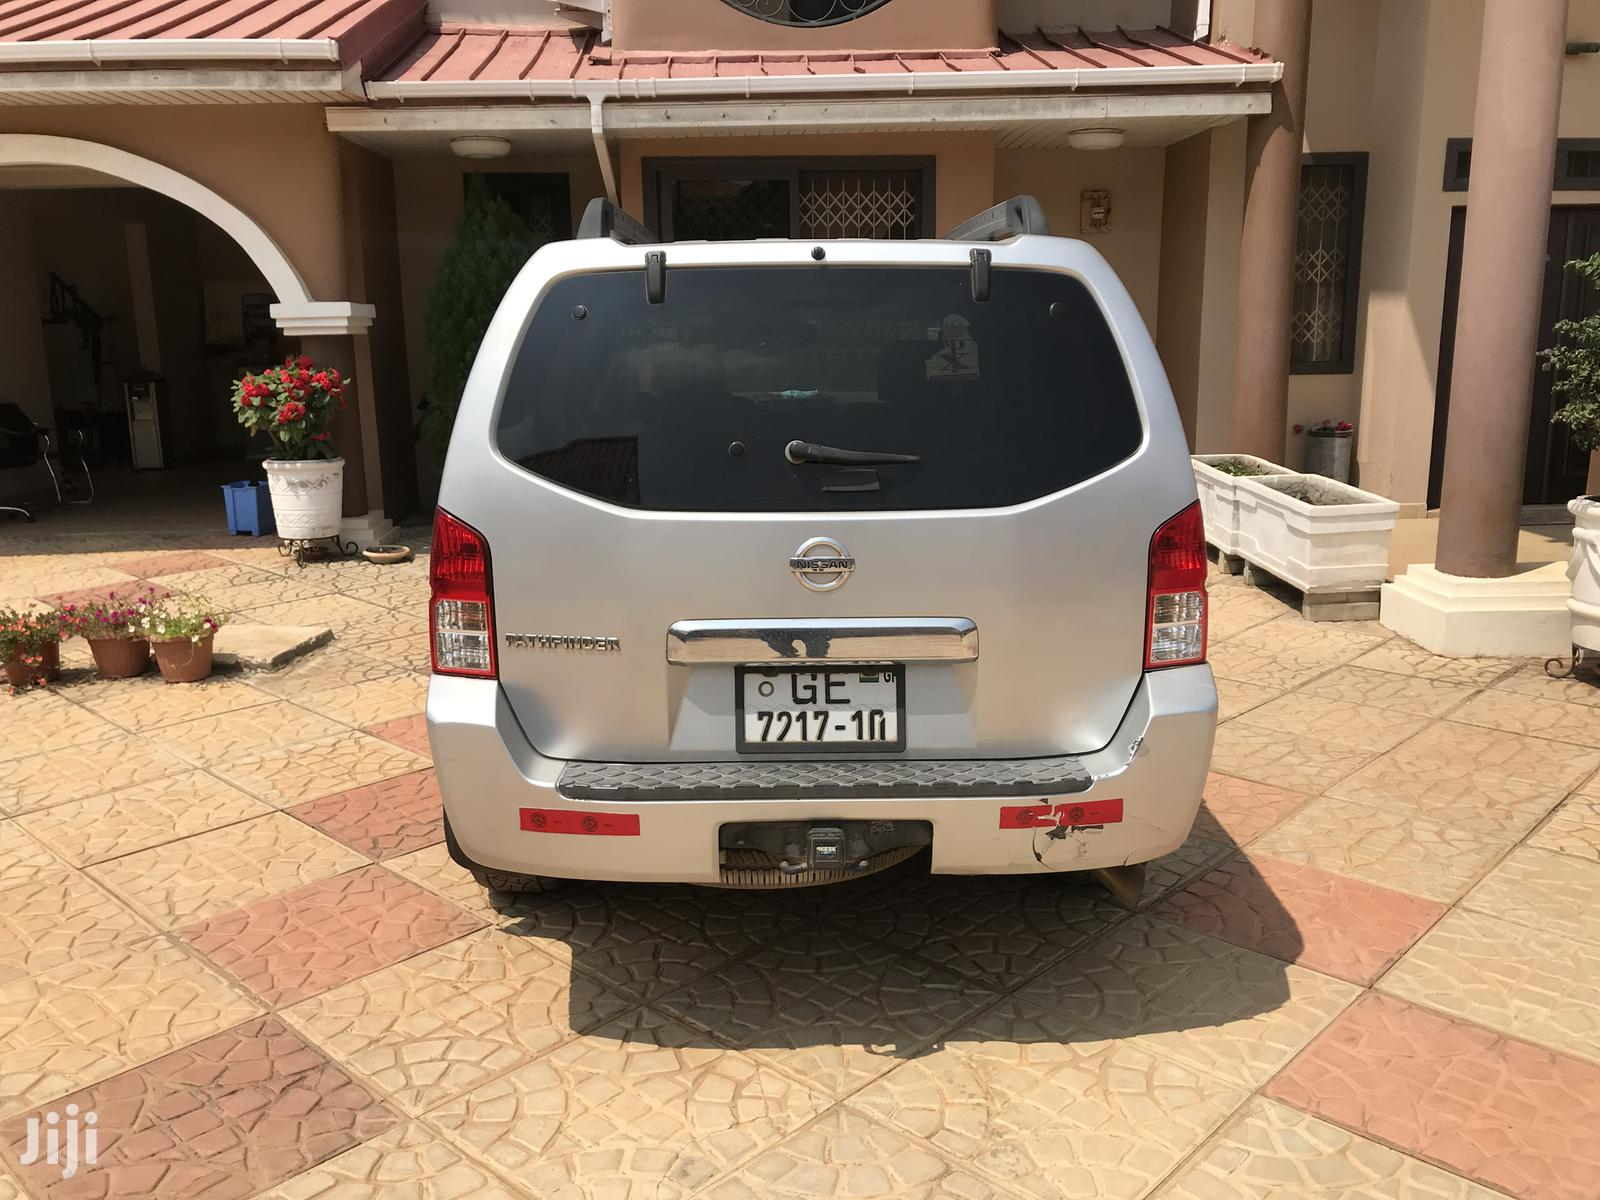 Nissan Pathfinder 2006 LE 4x4 Silver | Cars for sale in East Legon, Greater Accra, Ghana